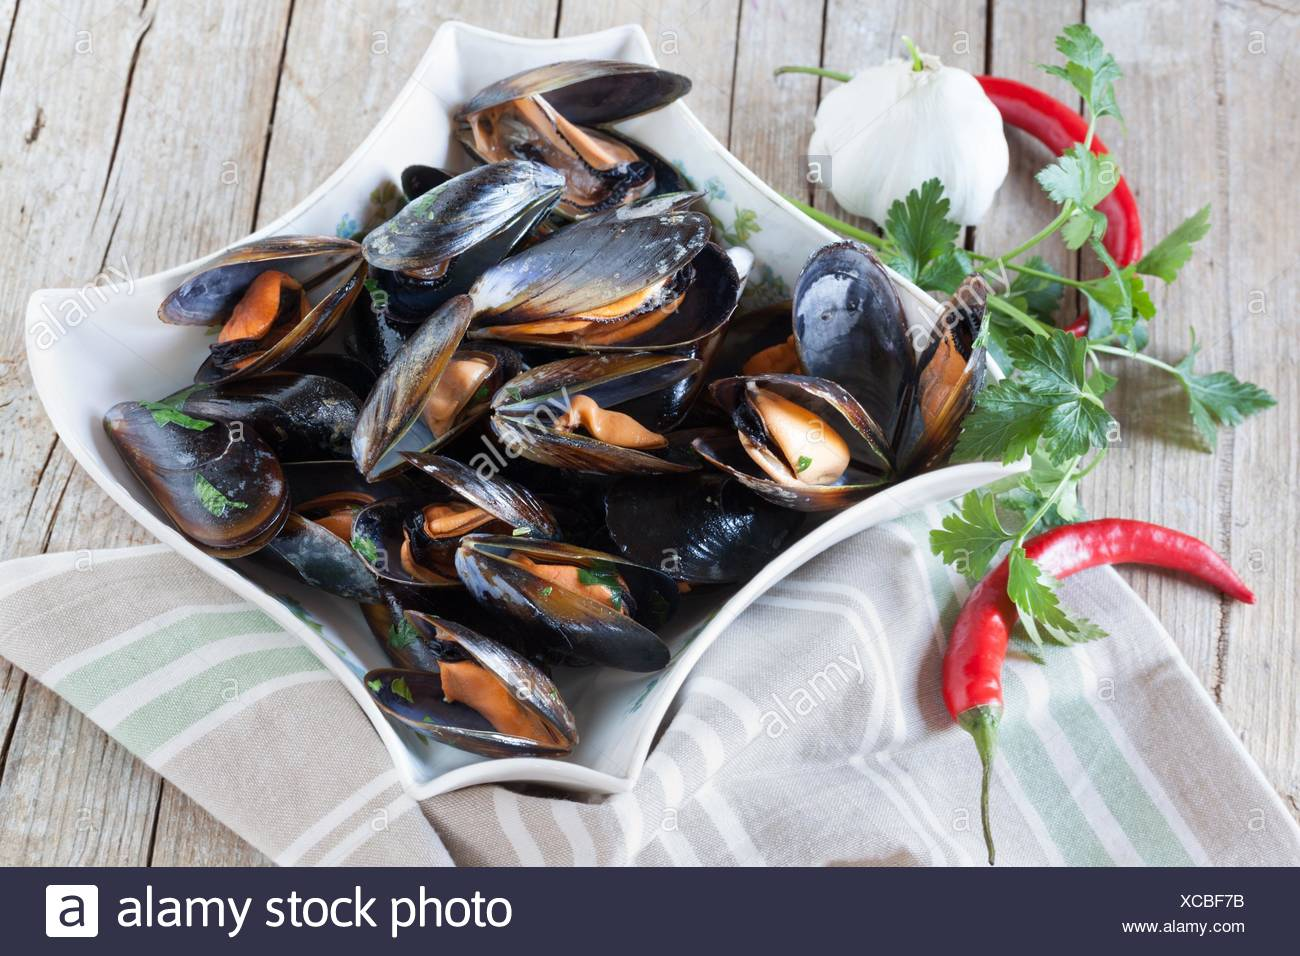 Plate with sauteed mussels decorated with fresh parsley, garlic and red chili pepper. - Stock Image